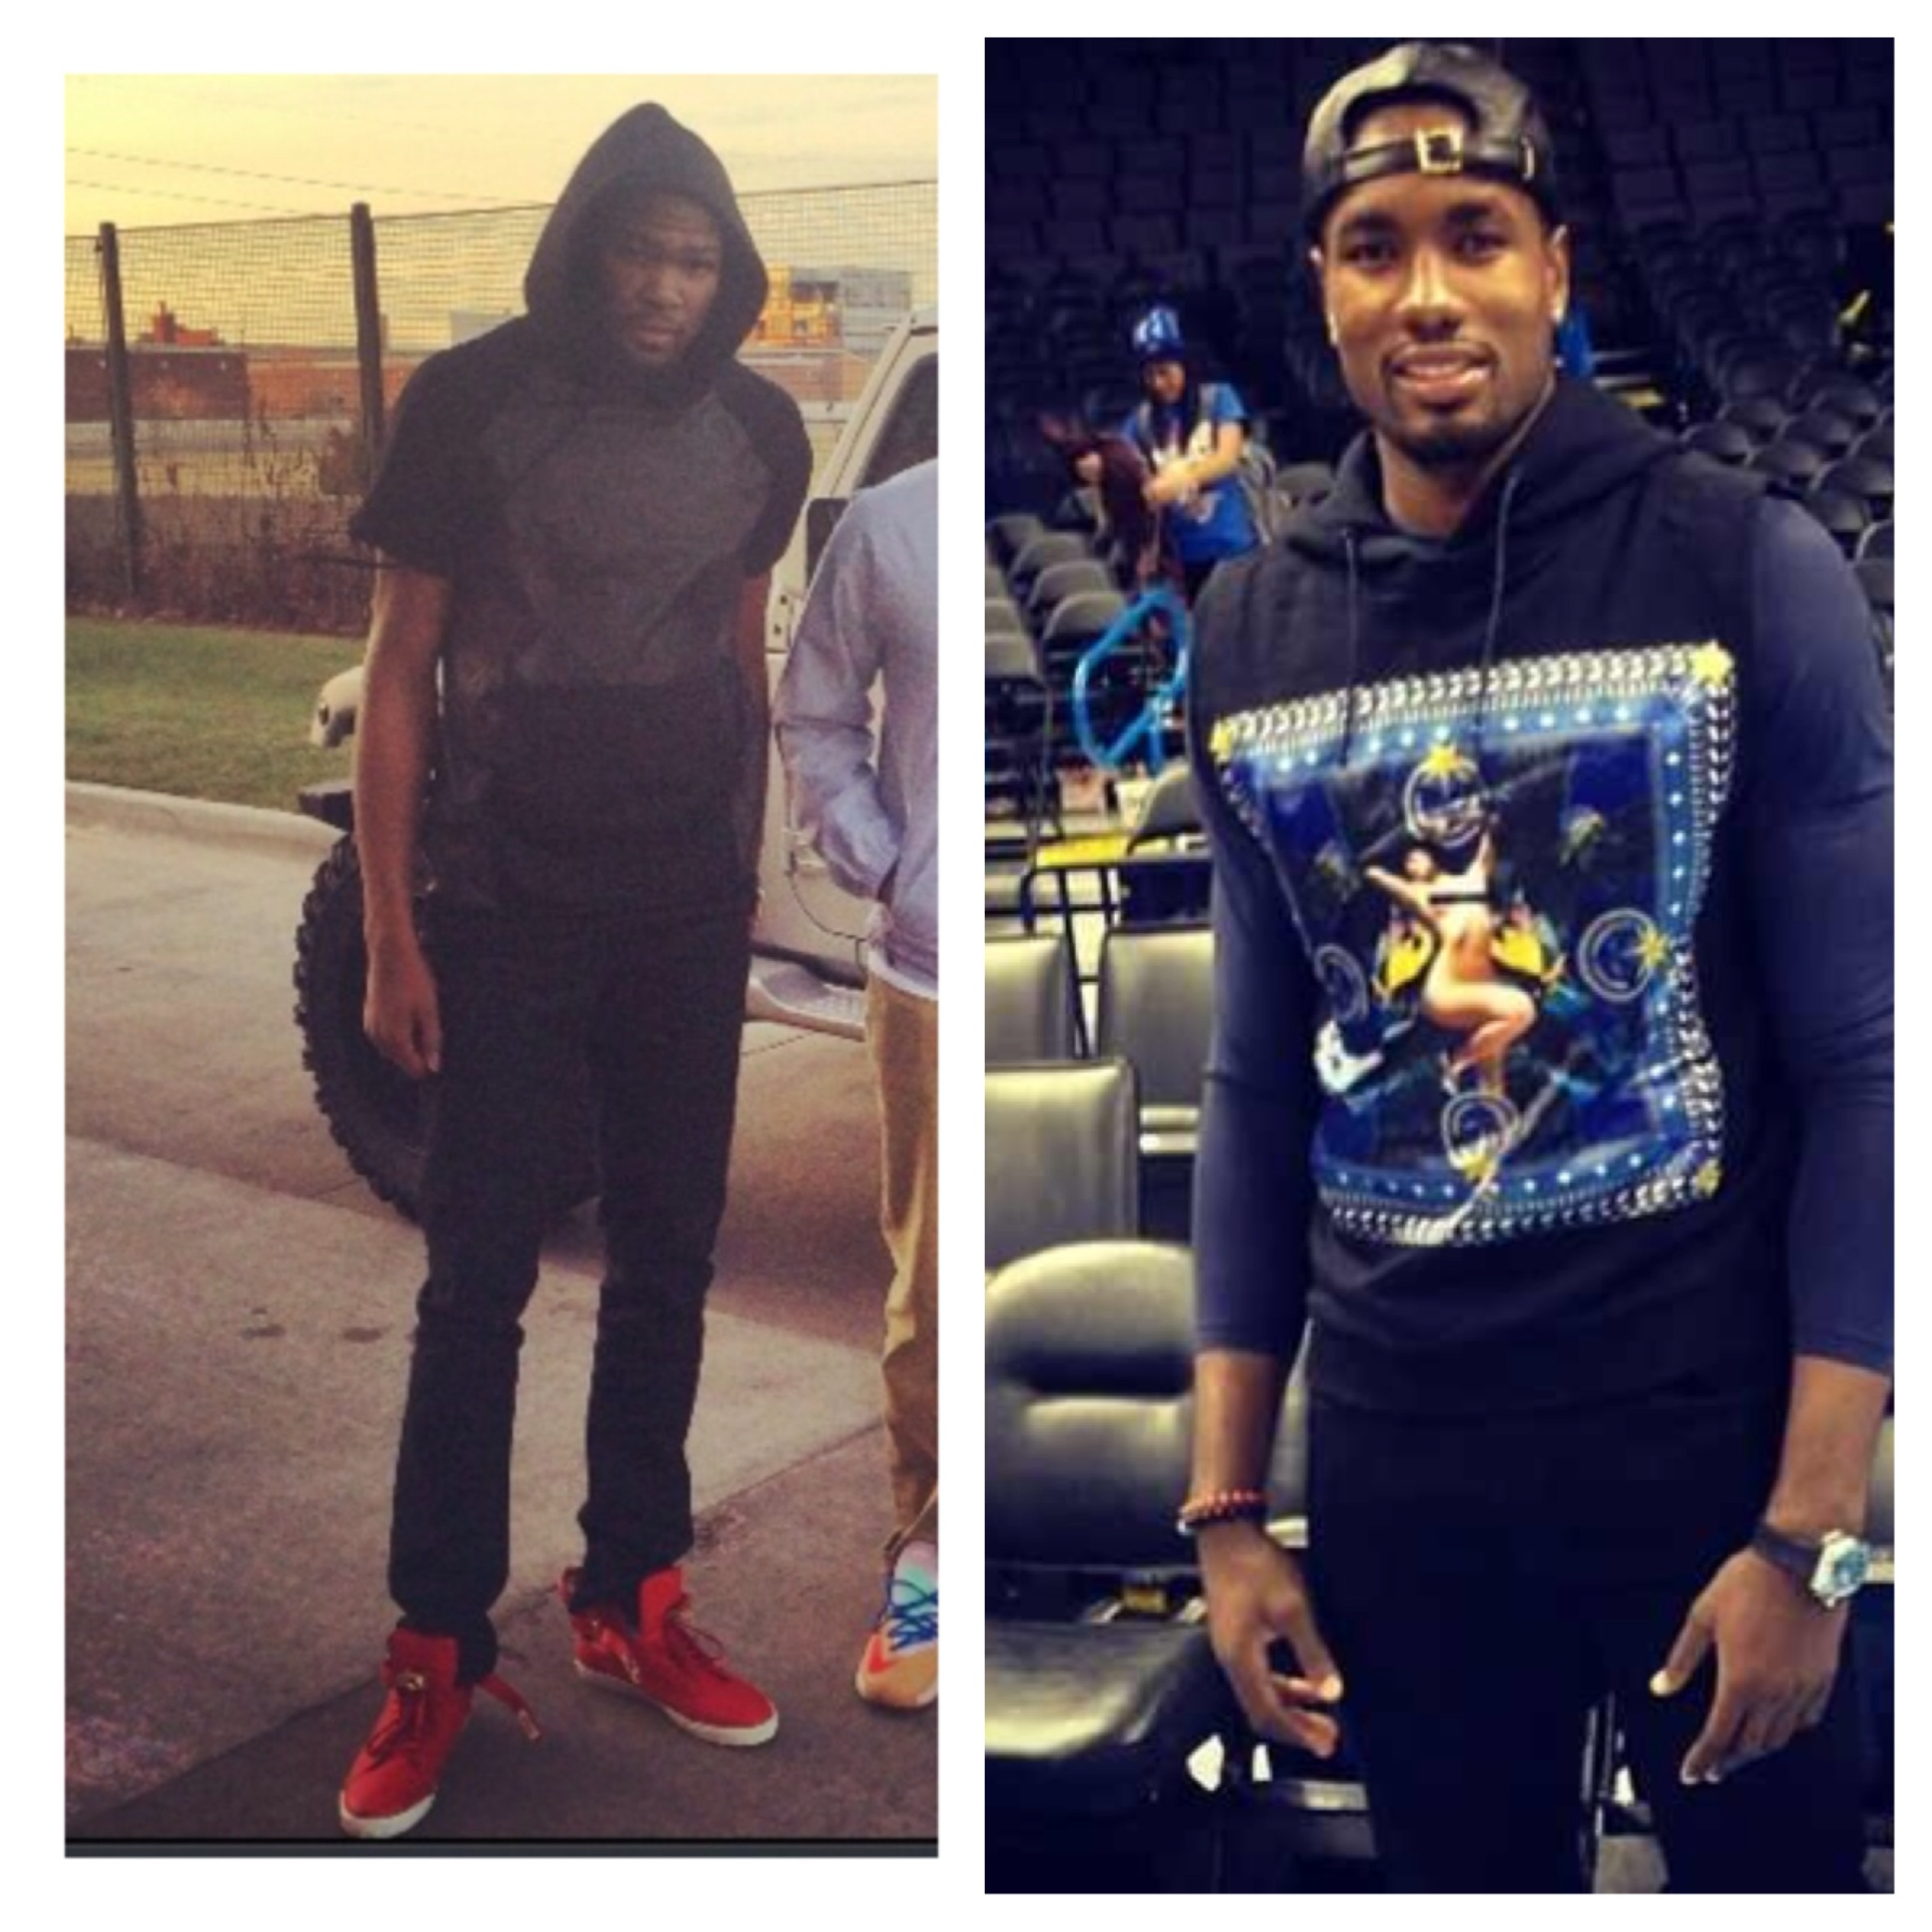 Kevin-Durant-instagram-fear-of-god-hoodie-serge-ibaka-givenchy-pin-up-girl-hoodie